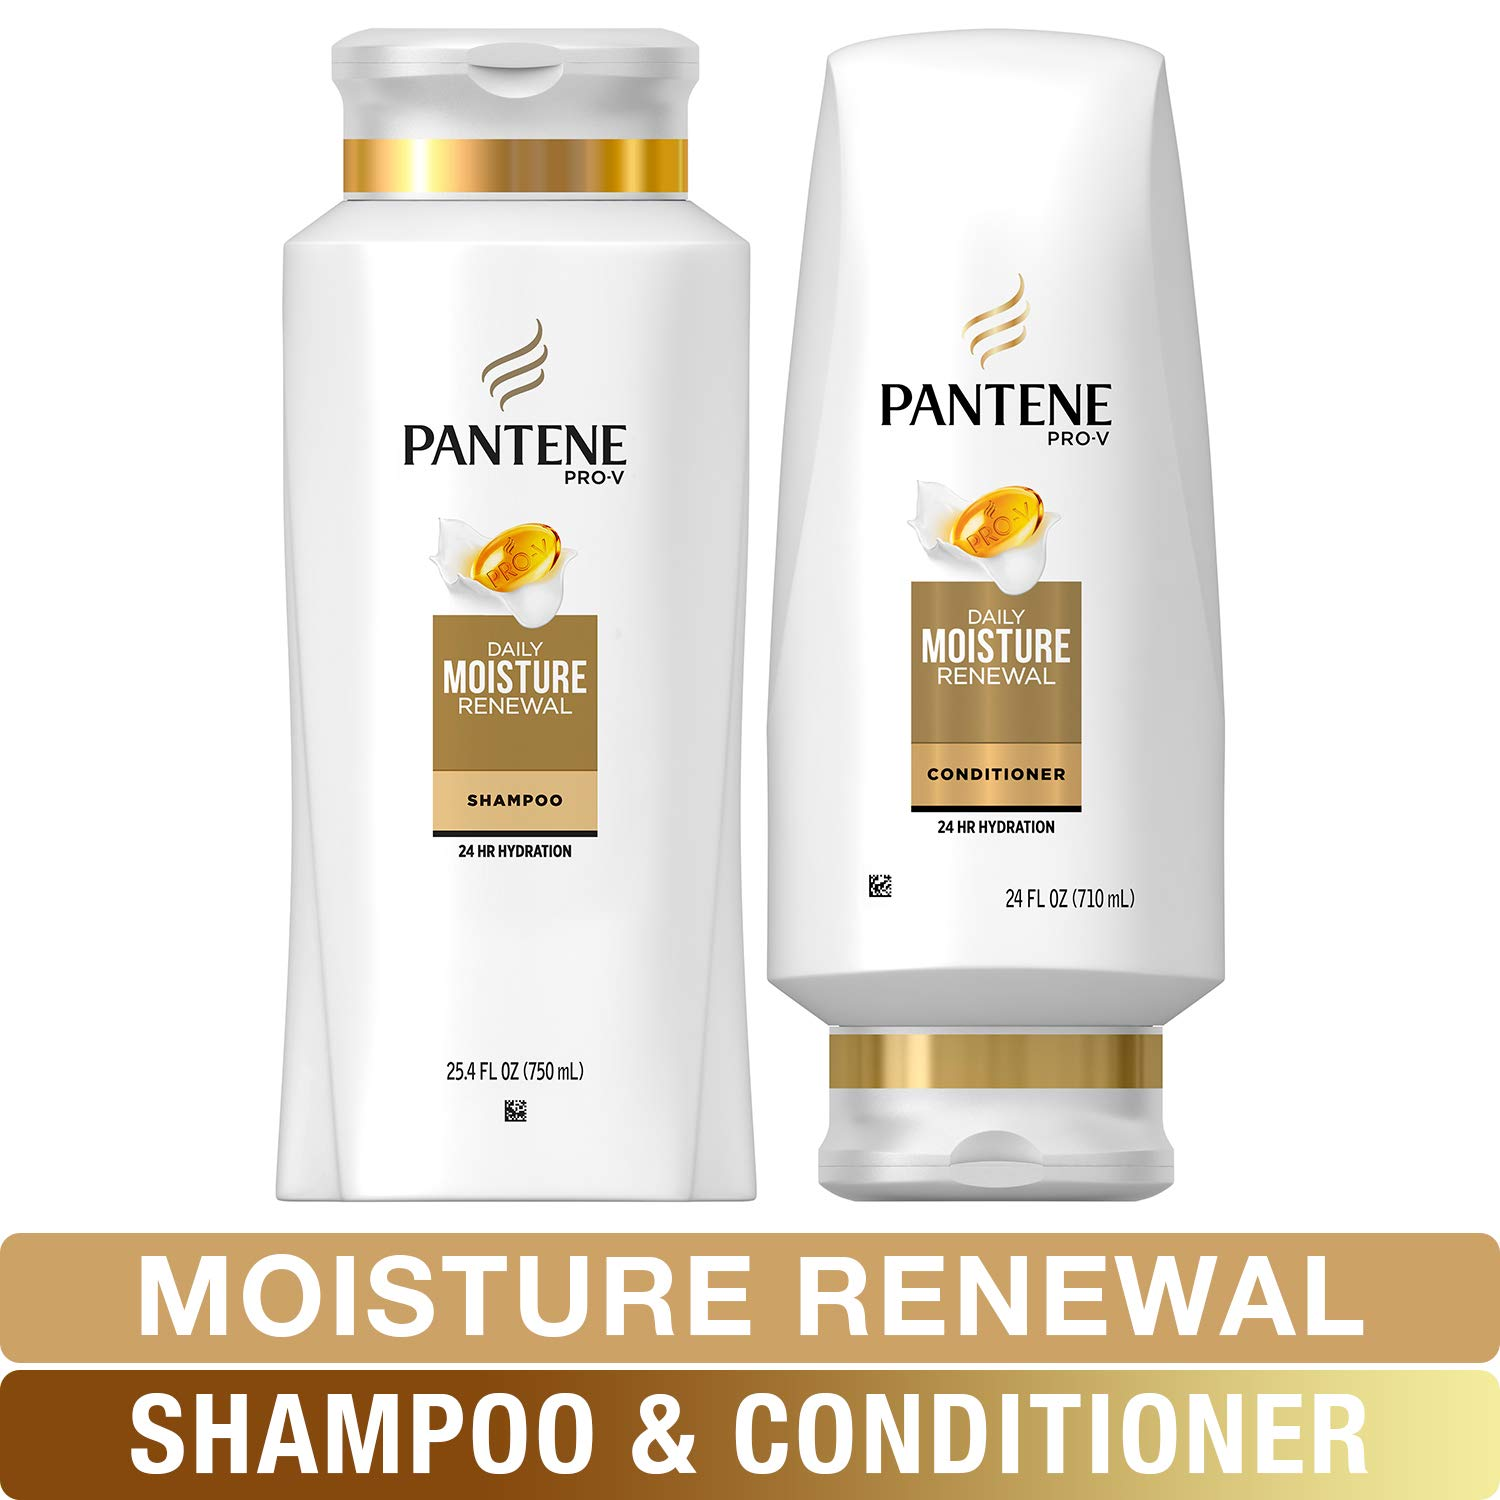 Pantene Moisturizing Shampoo and Silicone-Free Conditioner for Dry Hair, Daily Moisture Renewal, Bundle Pack, 1 Set by Pantene